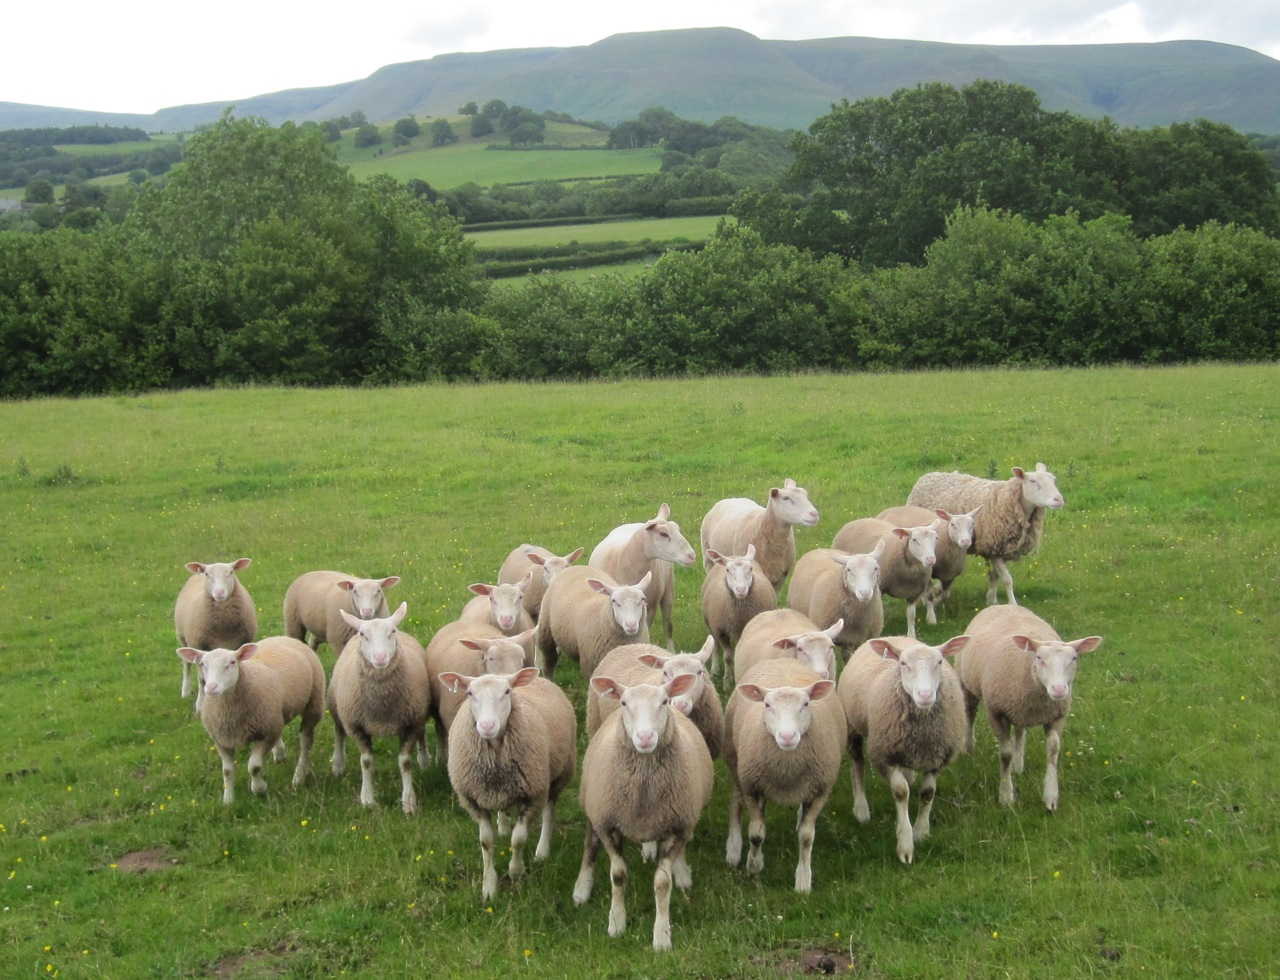 https://rollingharbourlife.files.wordpress.com/2011/10/sheep-wales.jpg